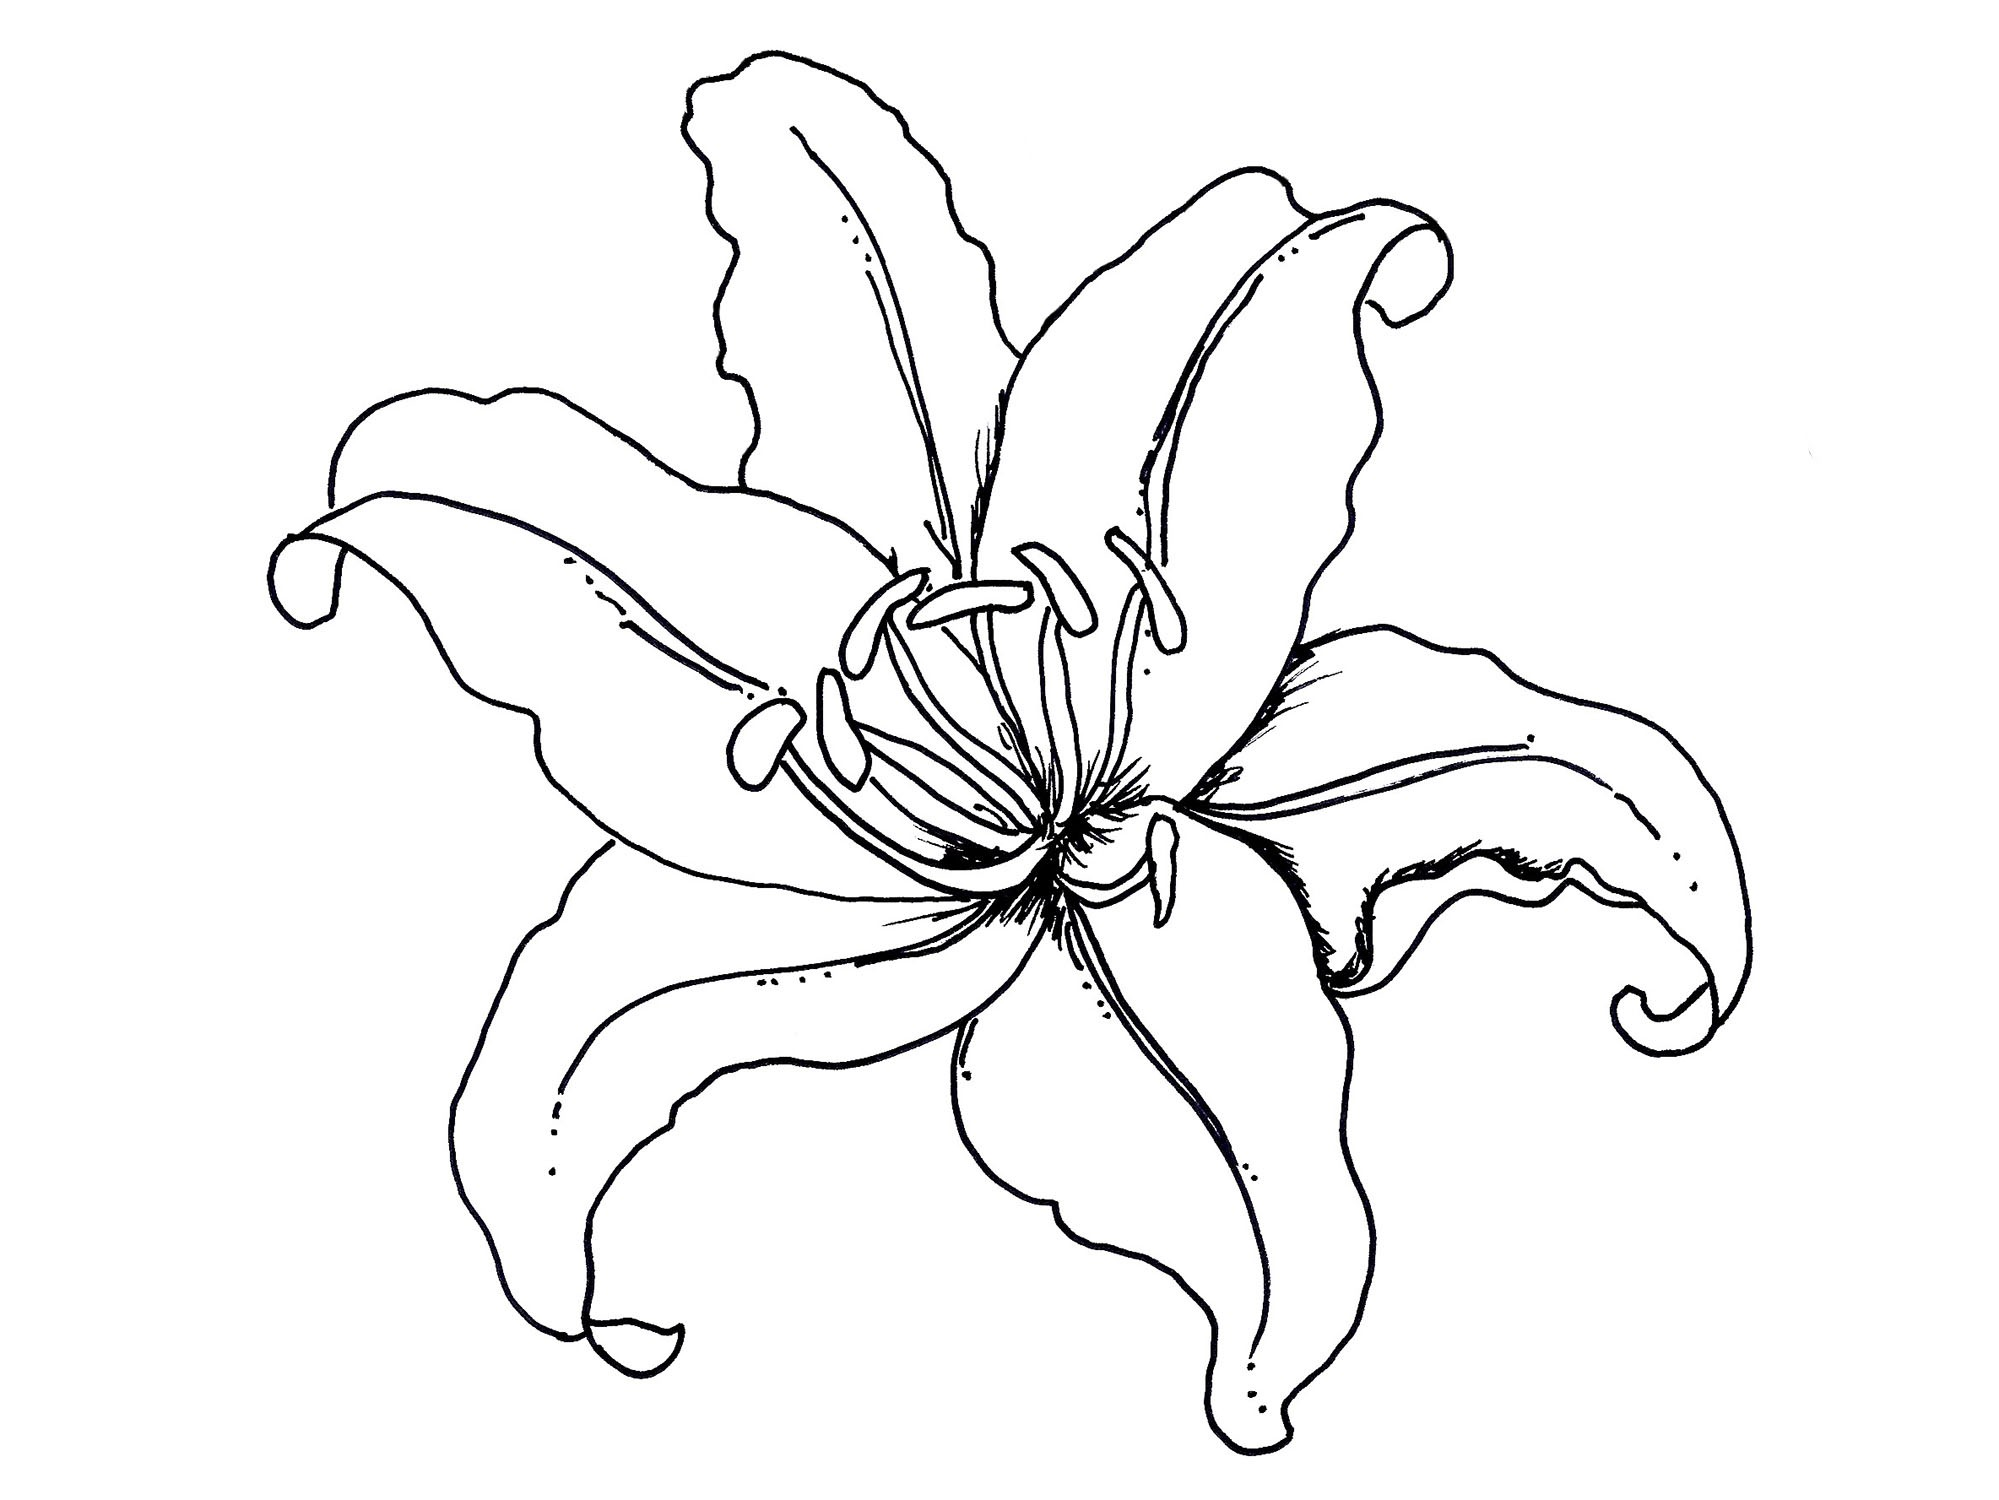 1999x1500 Rose Bud Flower Coloring Pages For Kids Inspirational Easy Kids